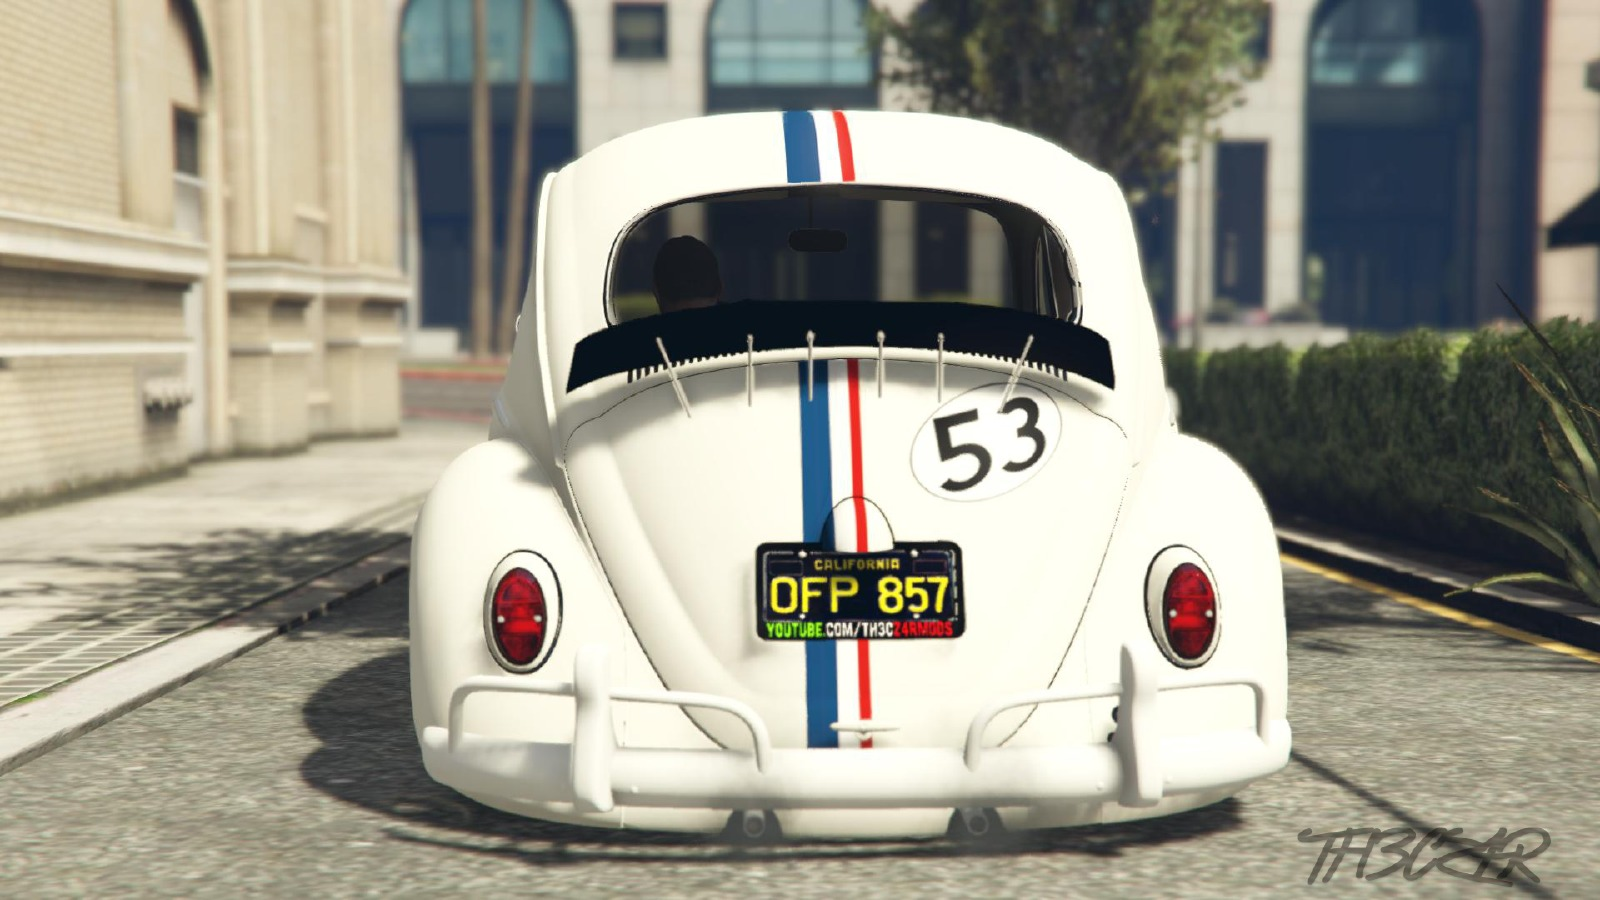 Herbie (Coccinelle) Fully Loaded - Vehicules pour GTA V ...